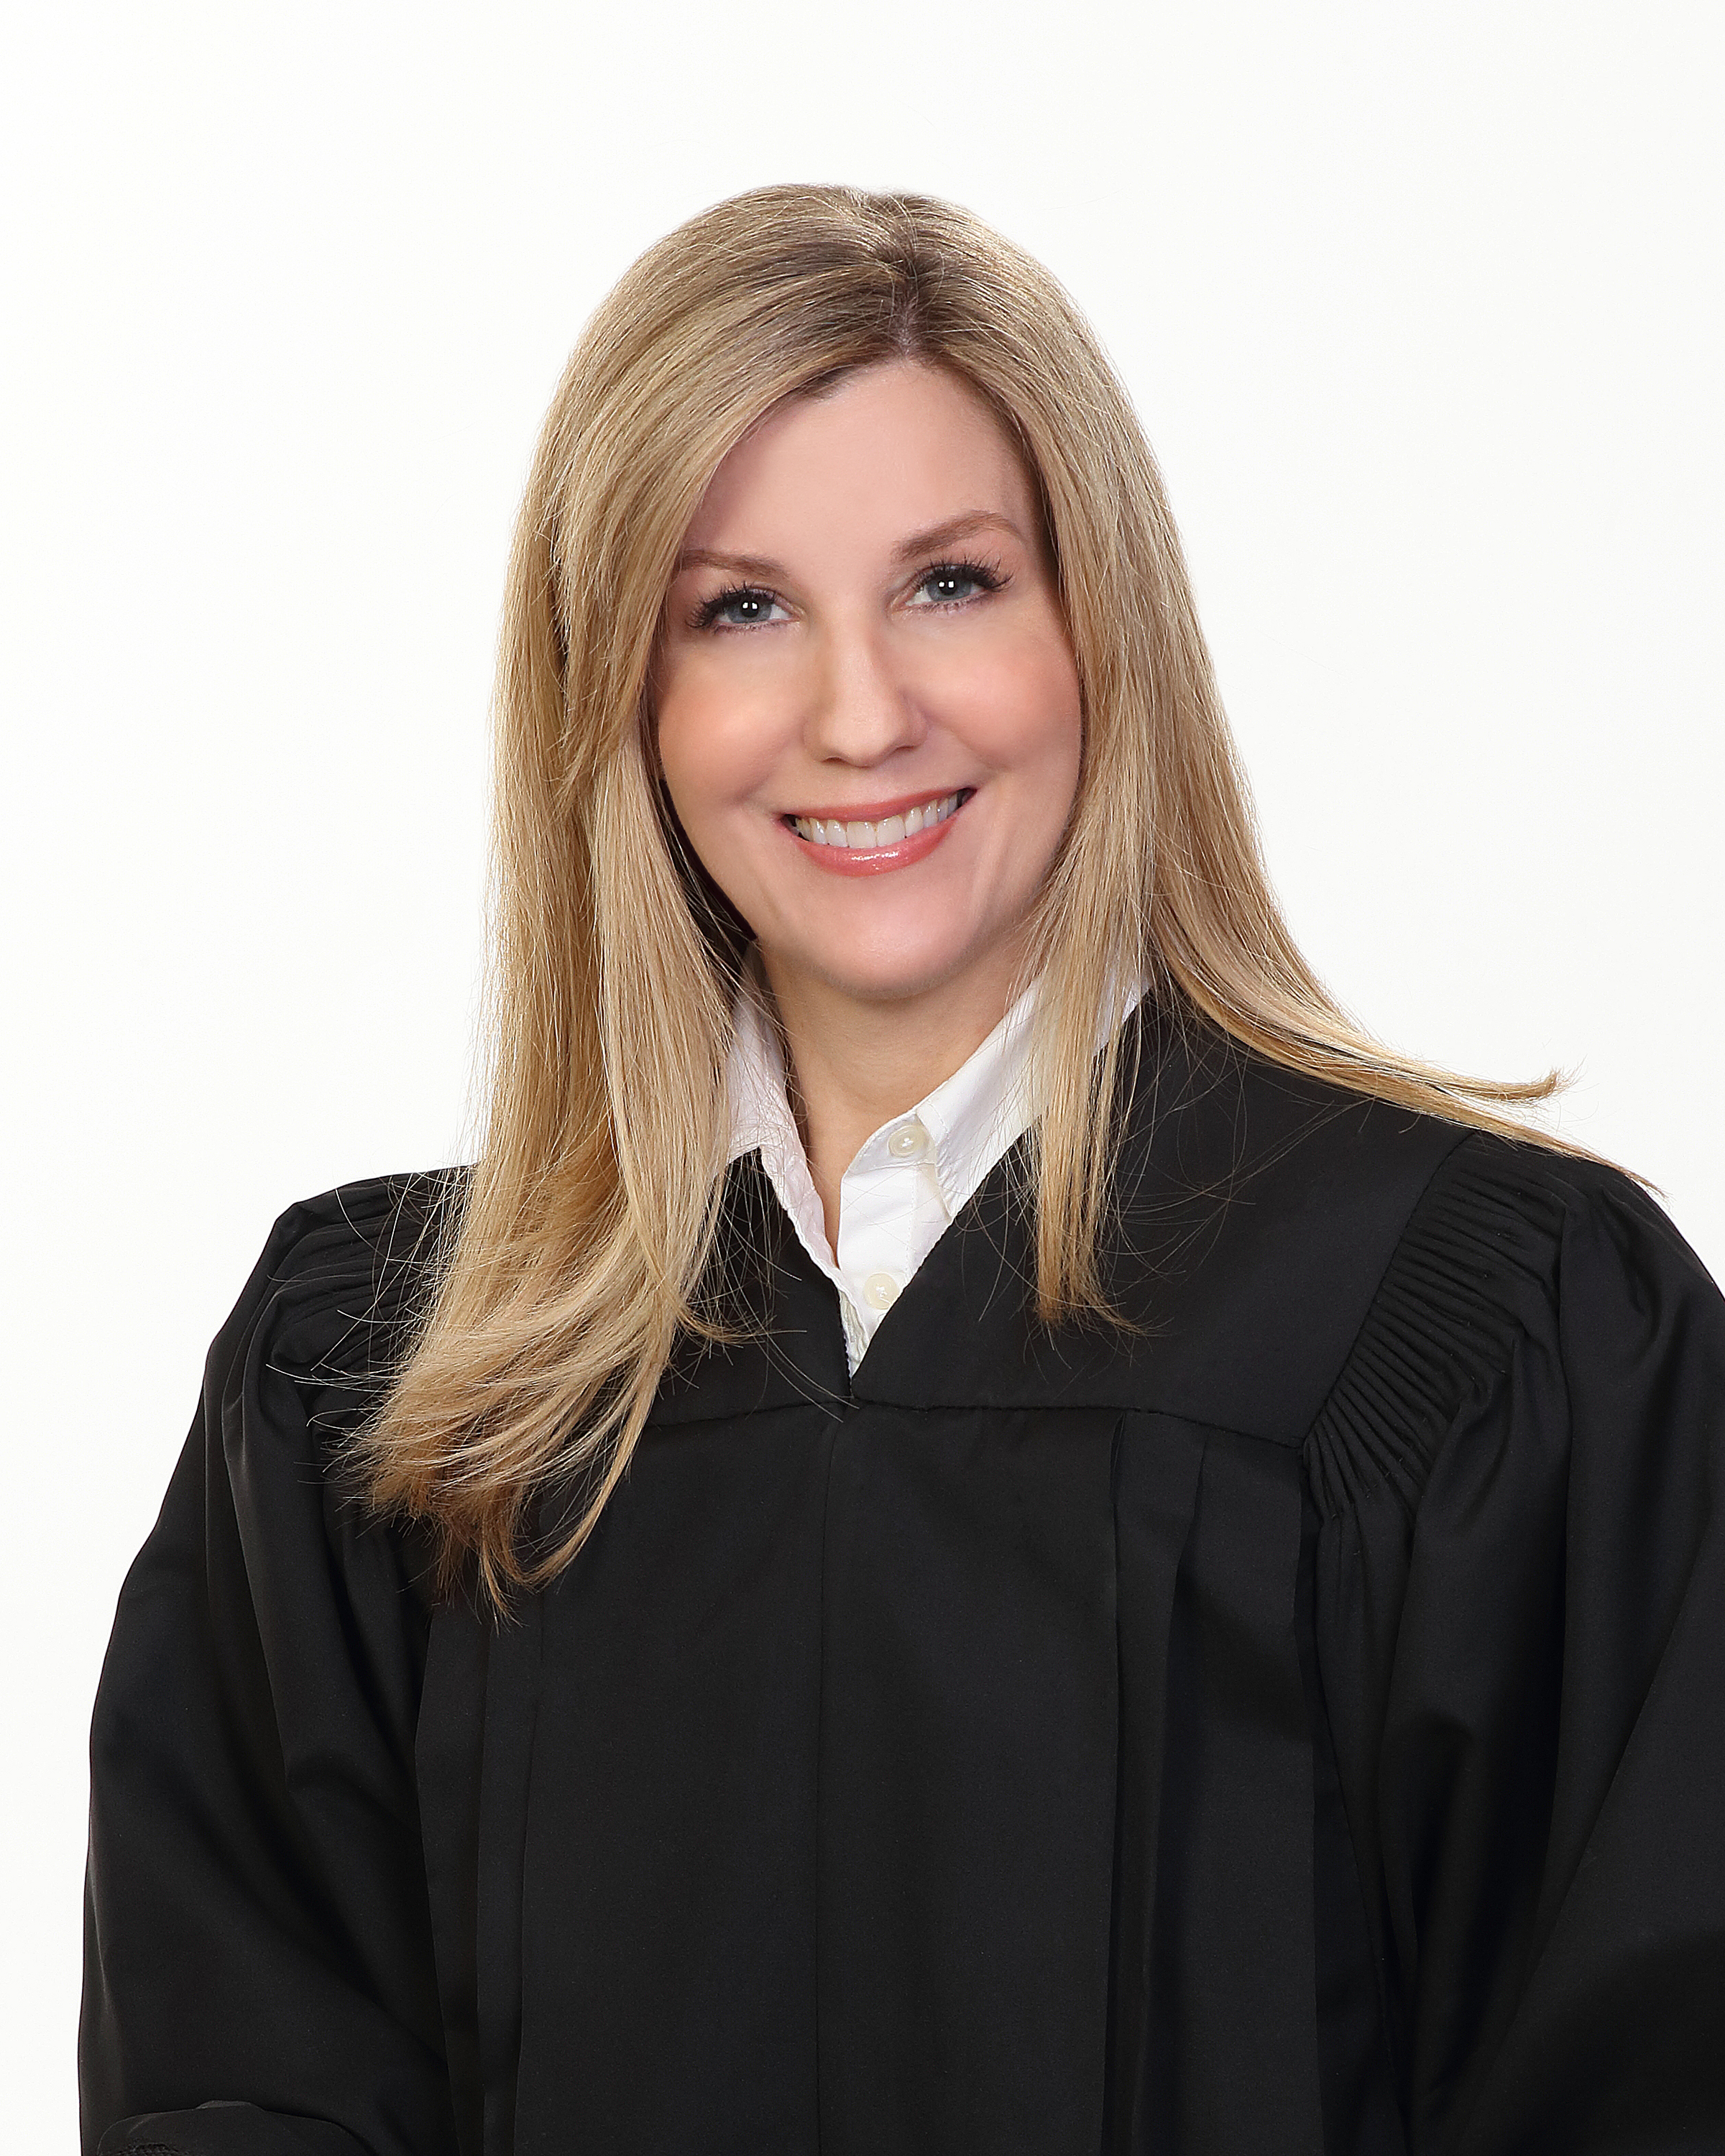 Judge Anne Cruser